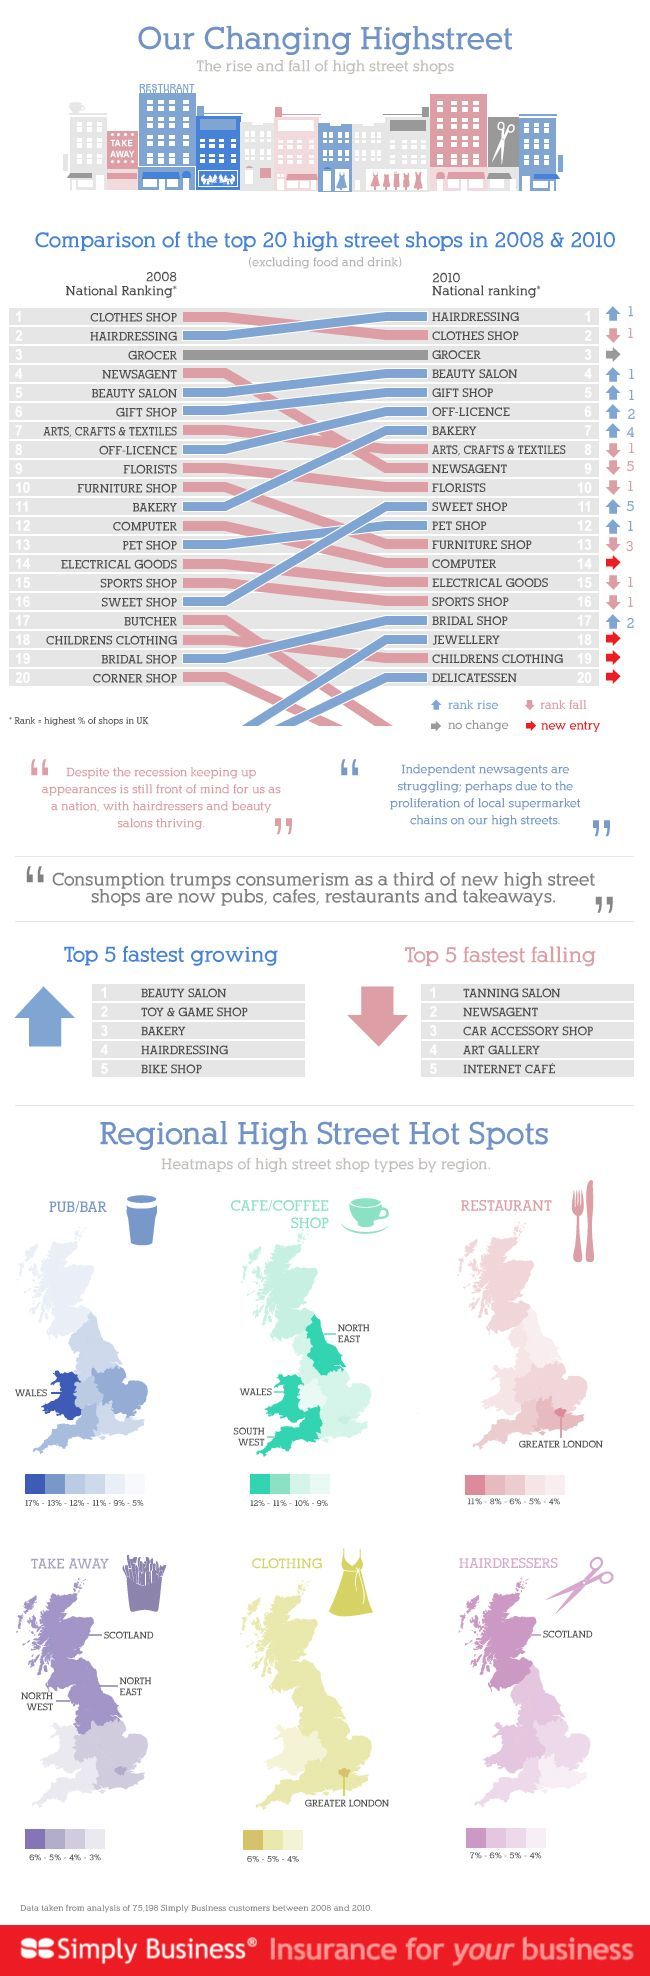 Our Changing Highstreet - http://www.coolinfoimages.com/infographics/our-changing-highstreet/